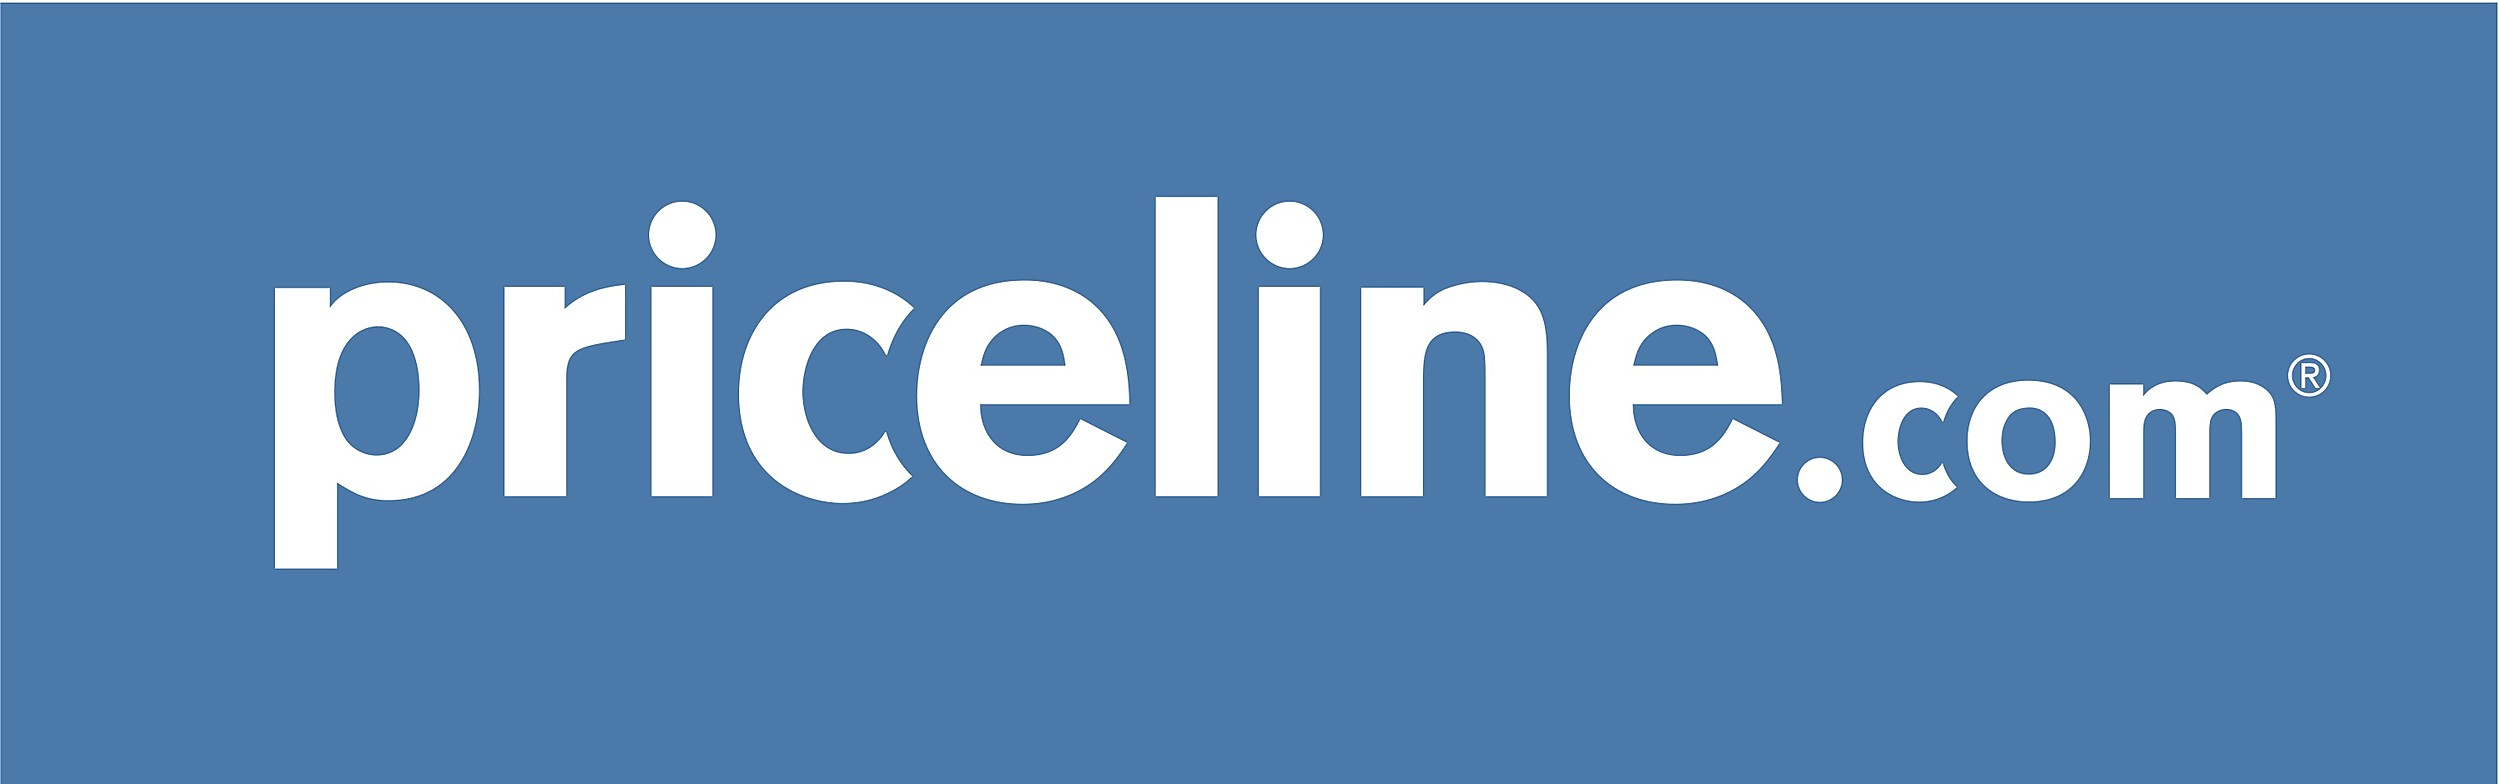 priceline is offering work from home opportunities